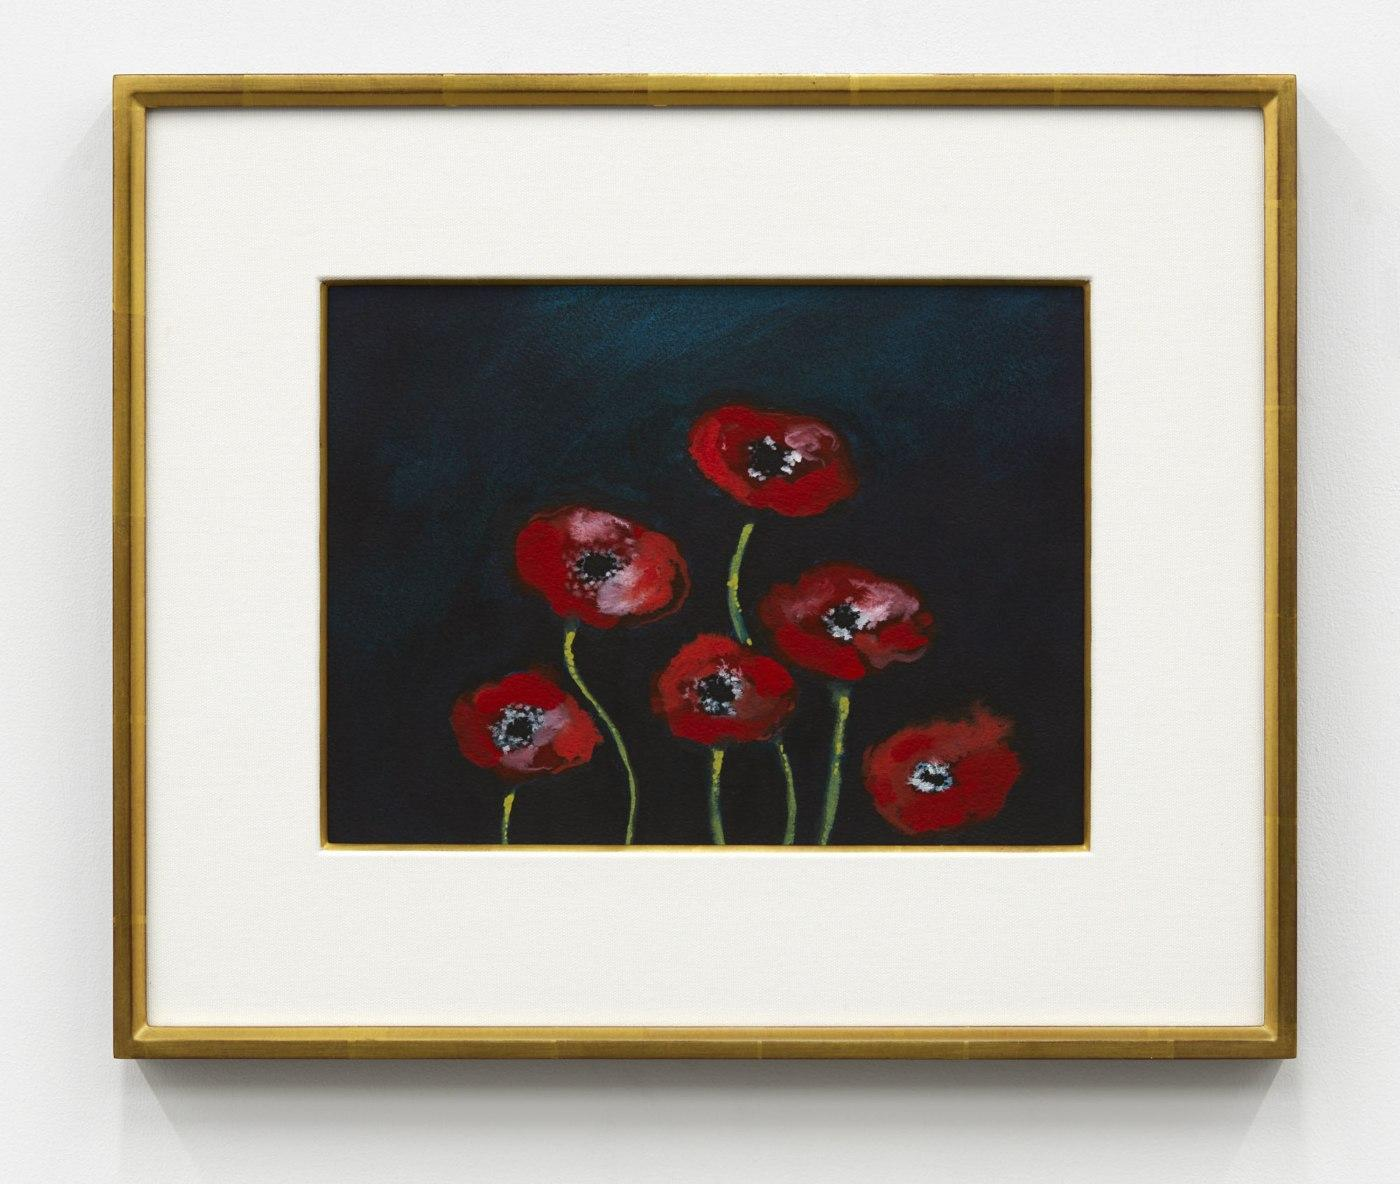 Nicolas Party,/Poppies/, 2020, watercolor on paper, 22.9 × 30.8 cm, 43 .8  × 51.8 cm (framed)